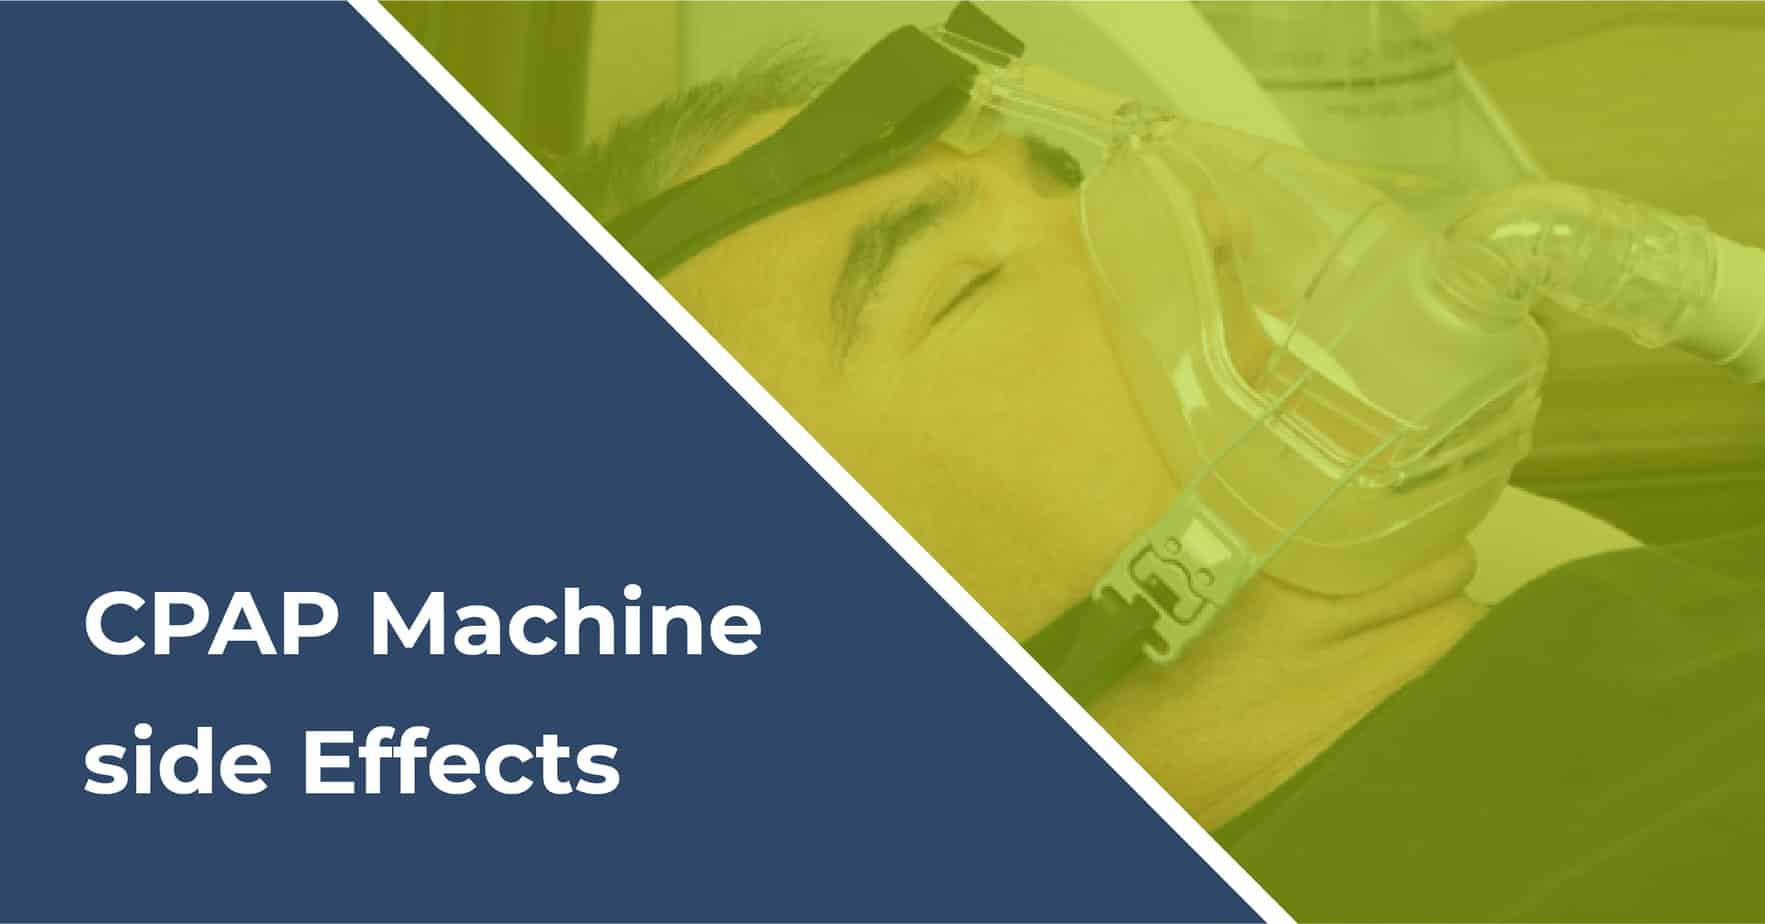 cpap machine side effects